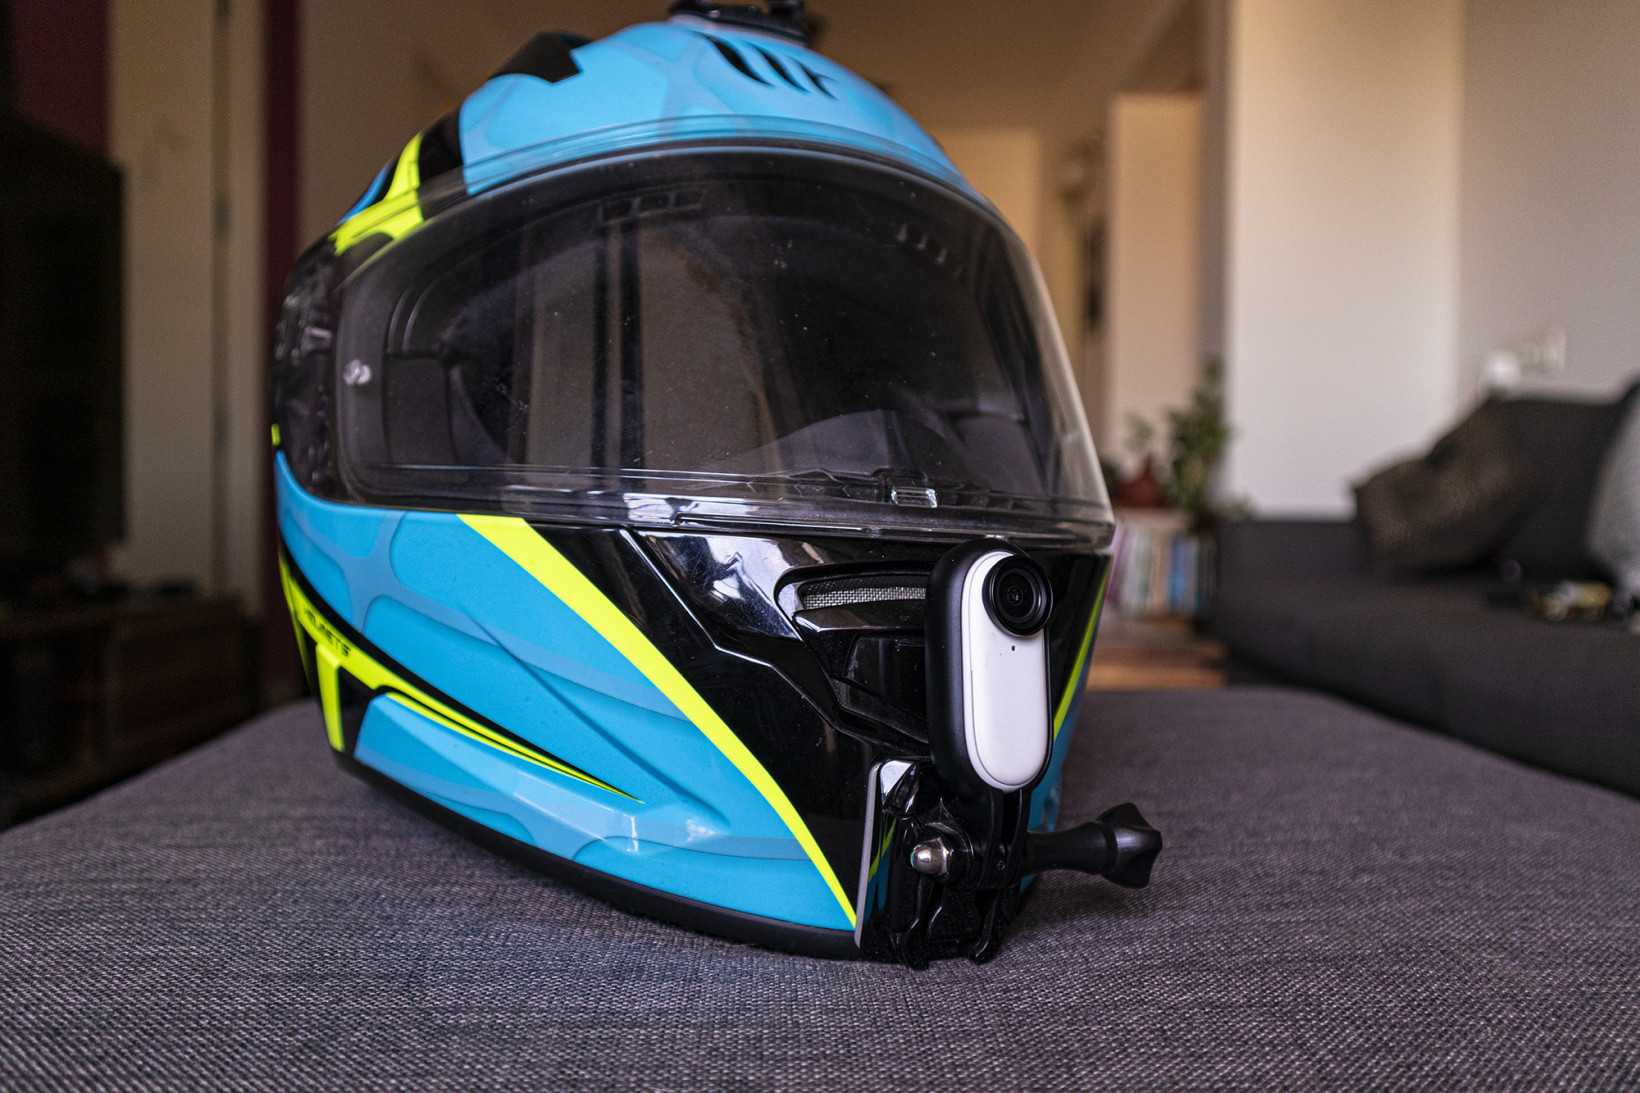 The Insta360 Go 2 fits securely on helmets with optional motorcycle mounts